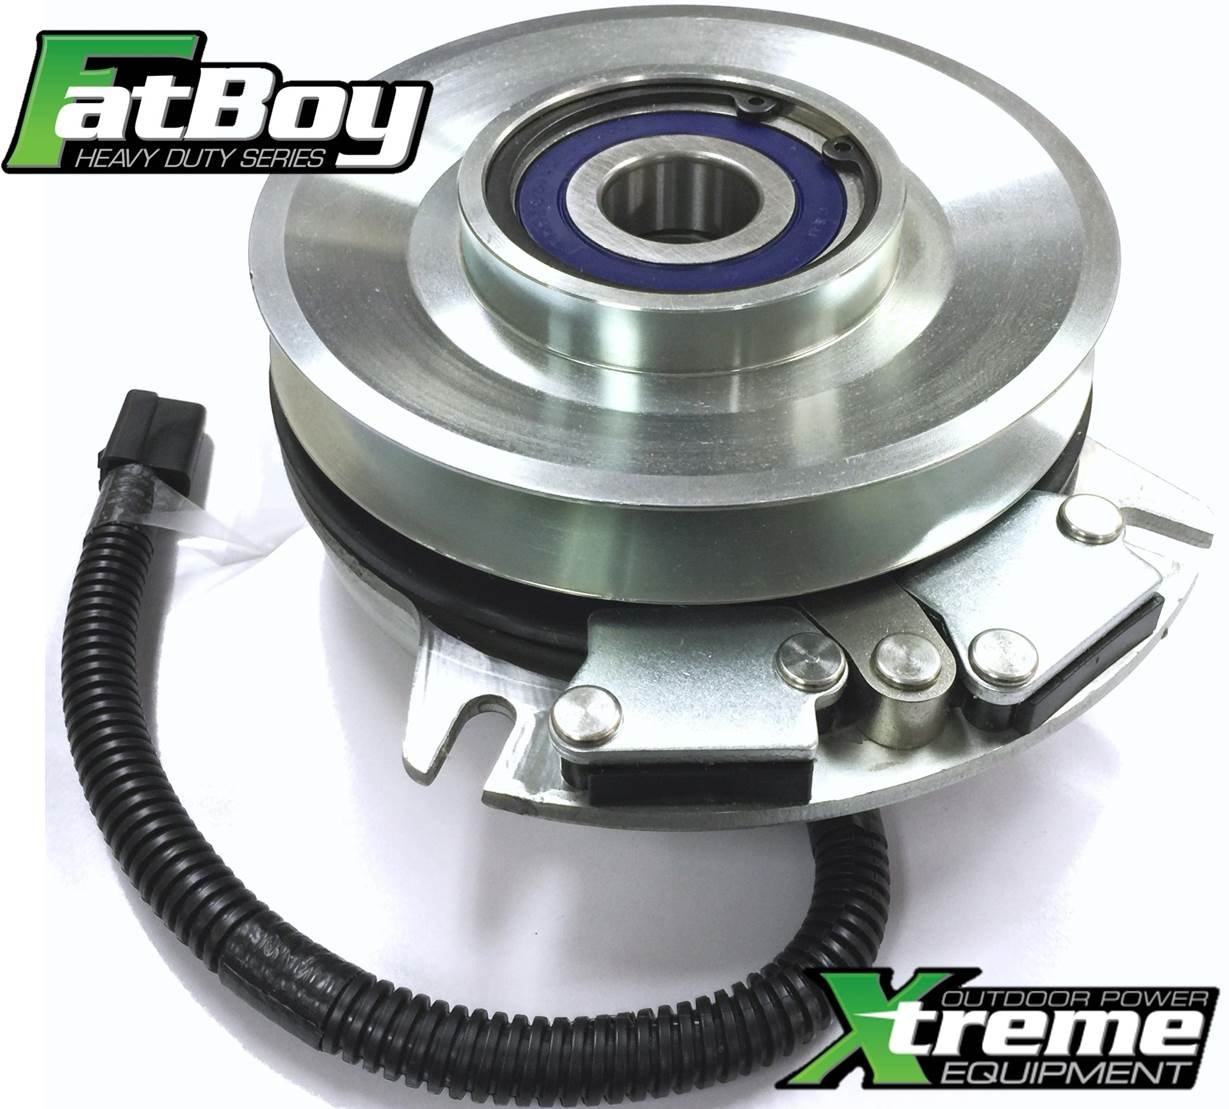 Xtreme Outdoor Power Equipment Replaces Grasshopper Mower Wiring Diagram Models 325 329 428d 388740 Pto Clutch New Heavy Duty Fatboy Garden